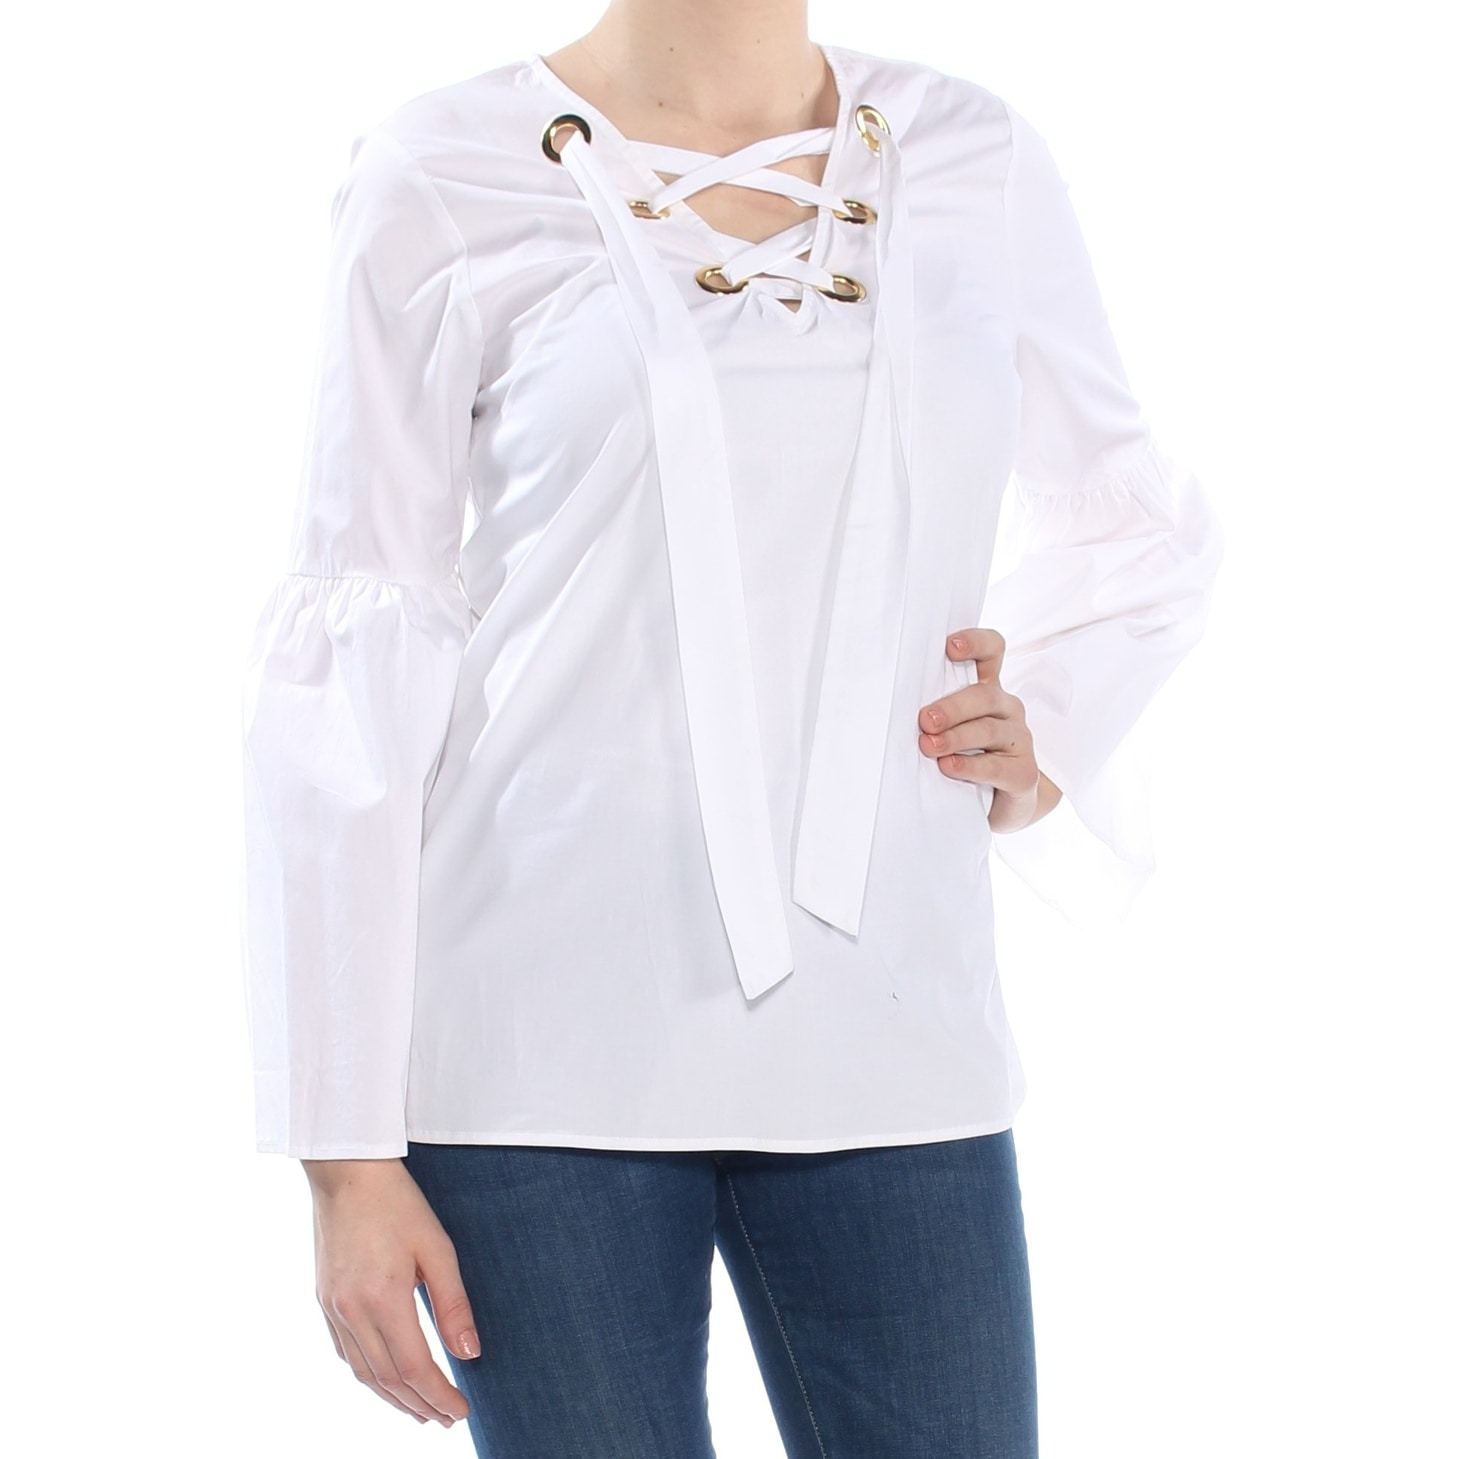 32ad5edda30f59 Michael Kors Tops | Find Great Women's Clothing Deals Shopping at Overstock